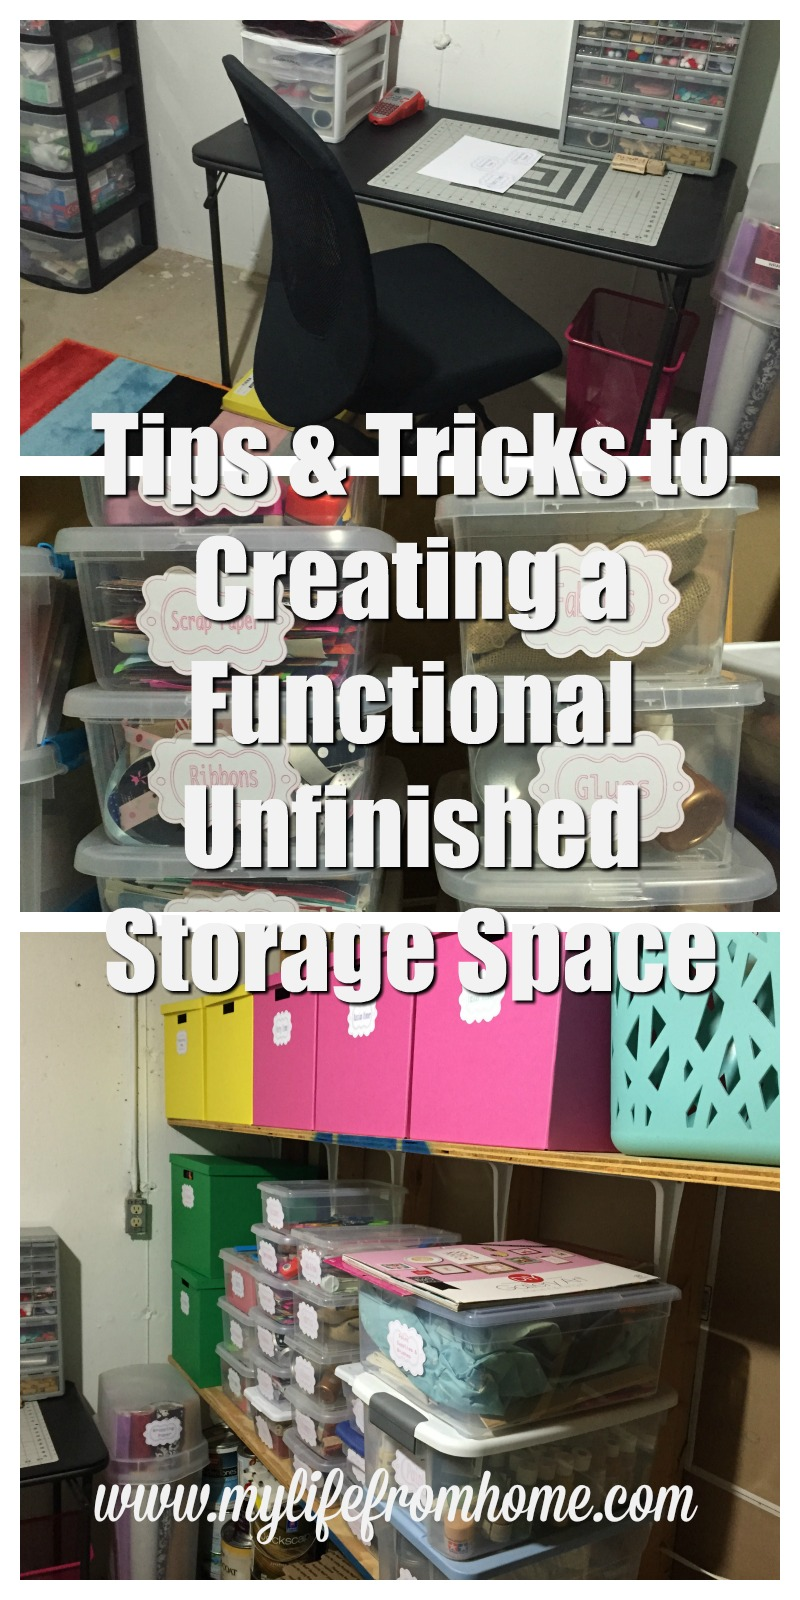 Tips & Tricks to Creating a Functional Unfinished Storage Space by www.mylifefromhome.com